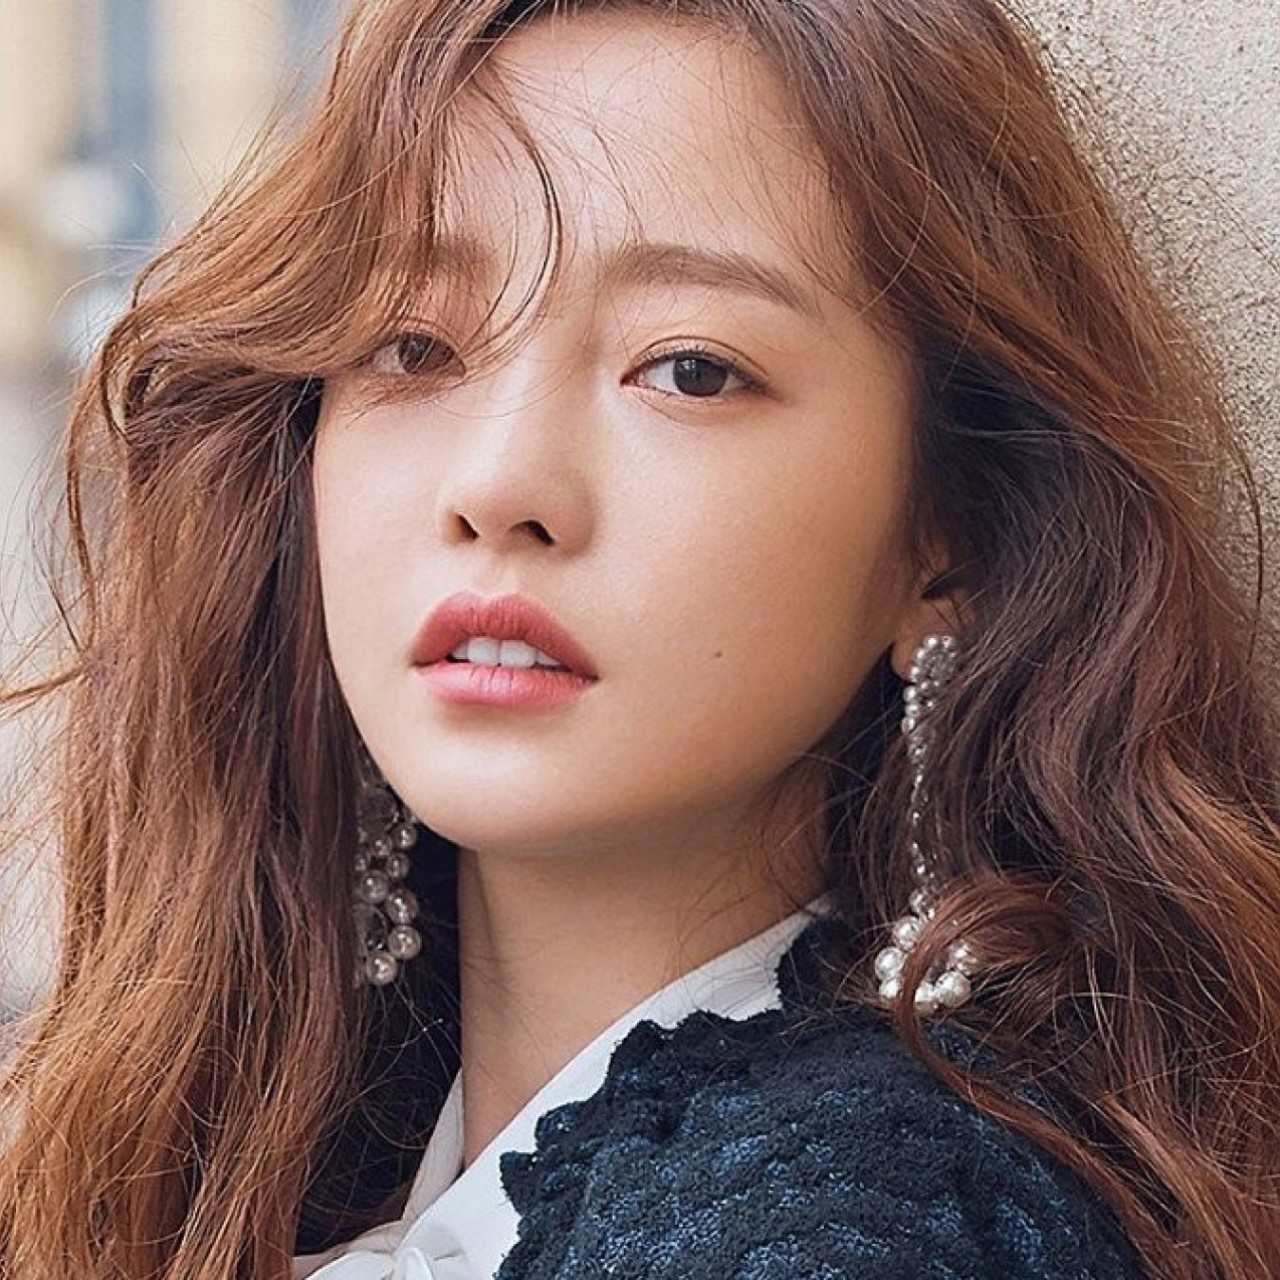 K-pop star Goo Hara 'recovering' after apparent suicide attempt